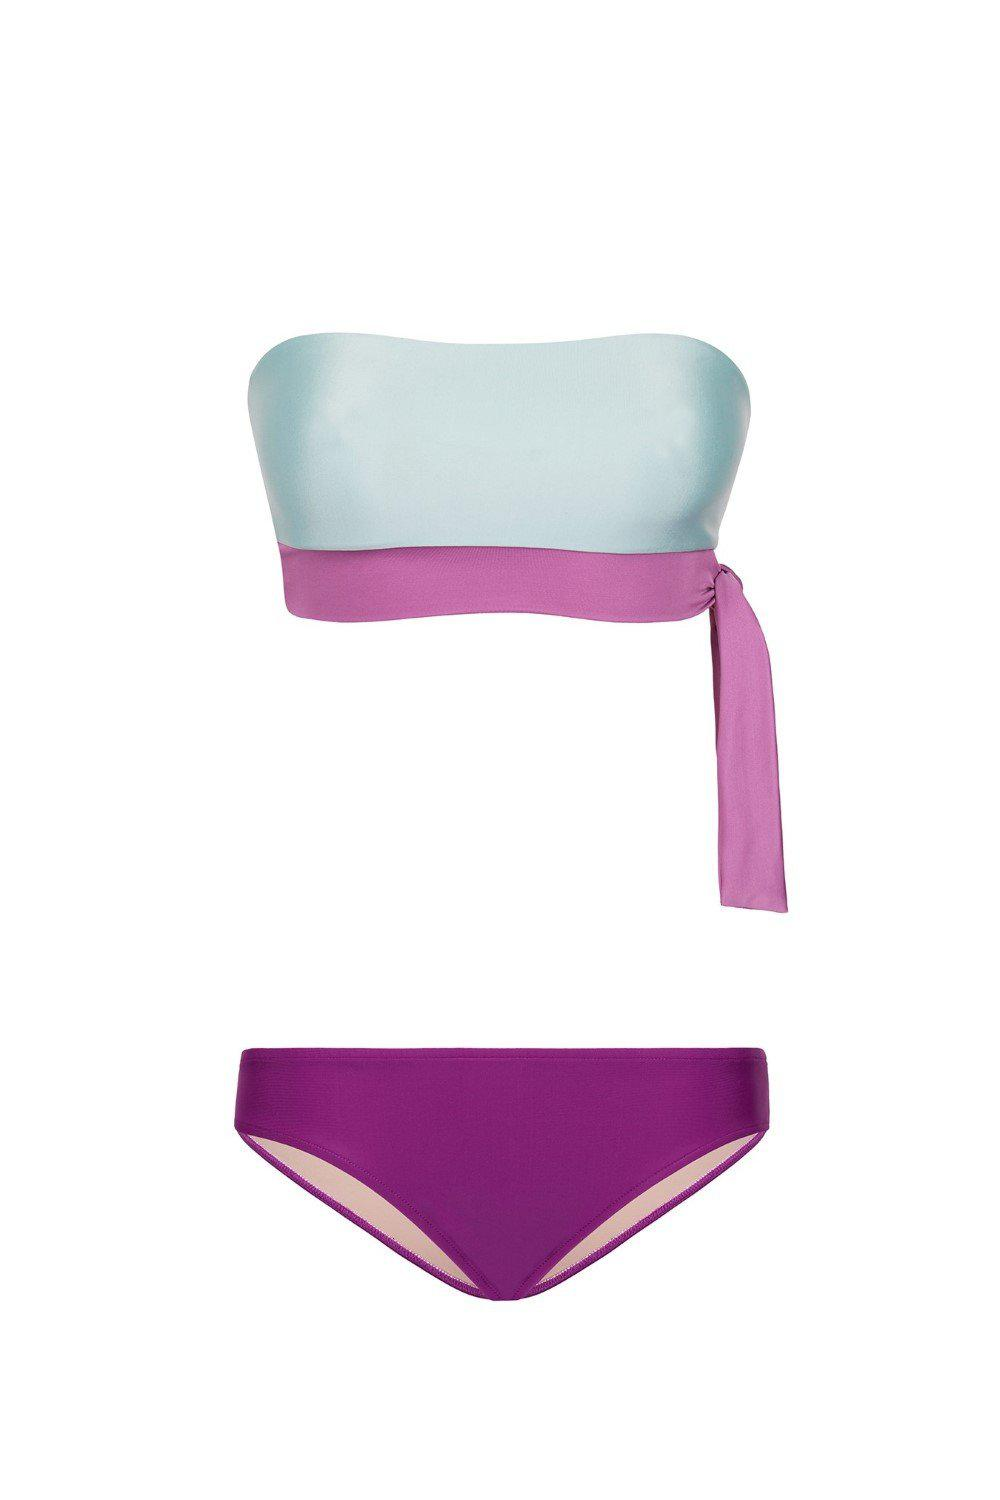 Cinque Terre Strapless Bikini with Knot Detail 3